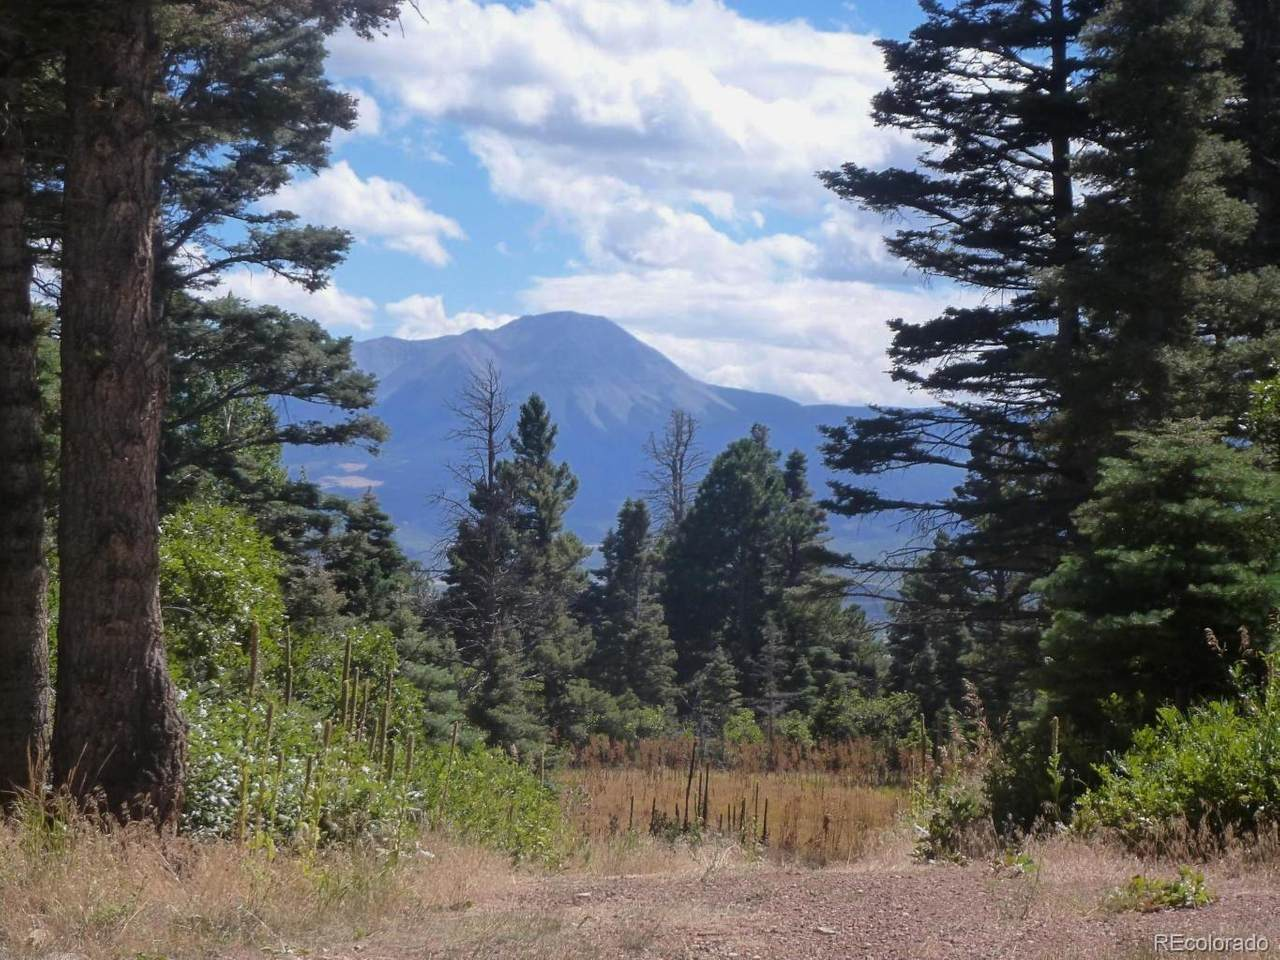 Tbd Highway 160 - Photo 1